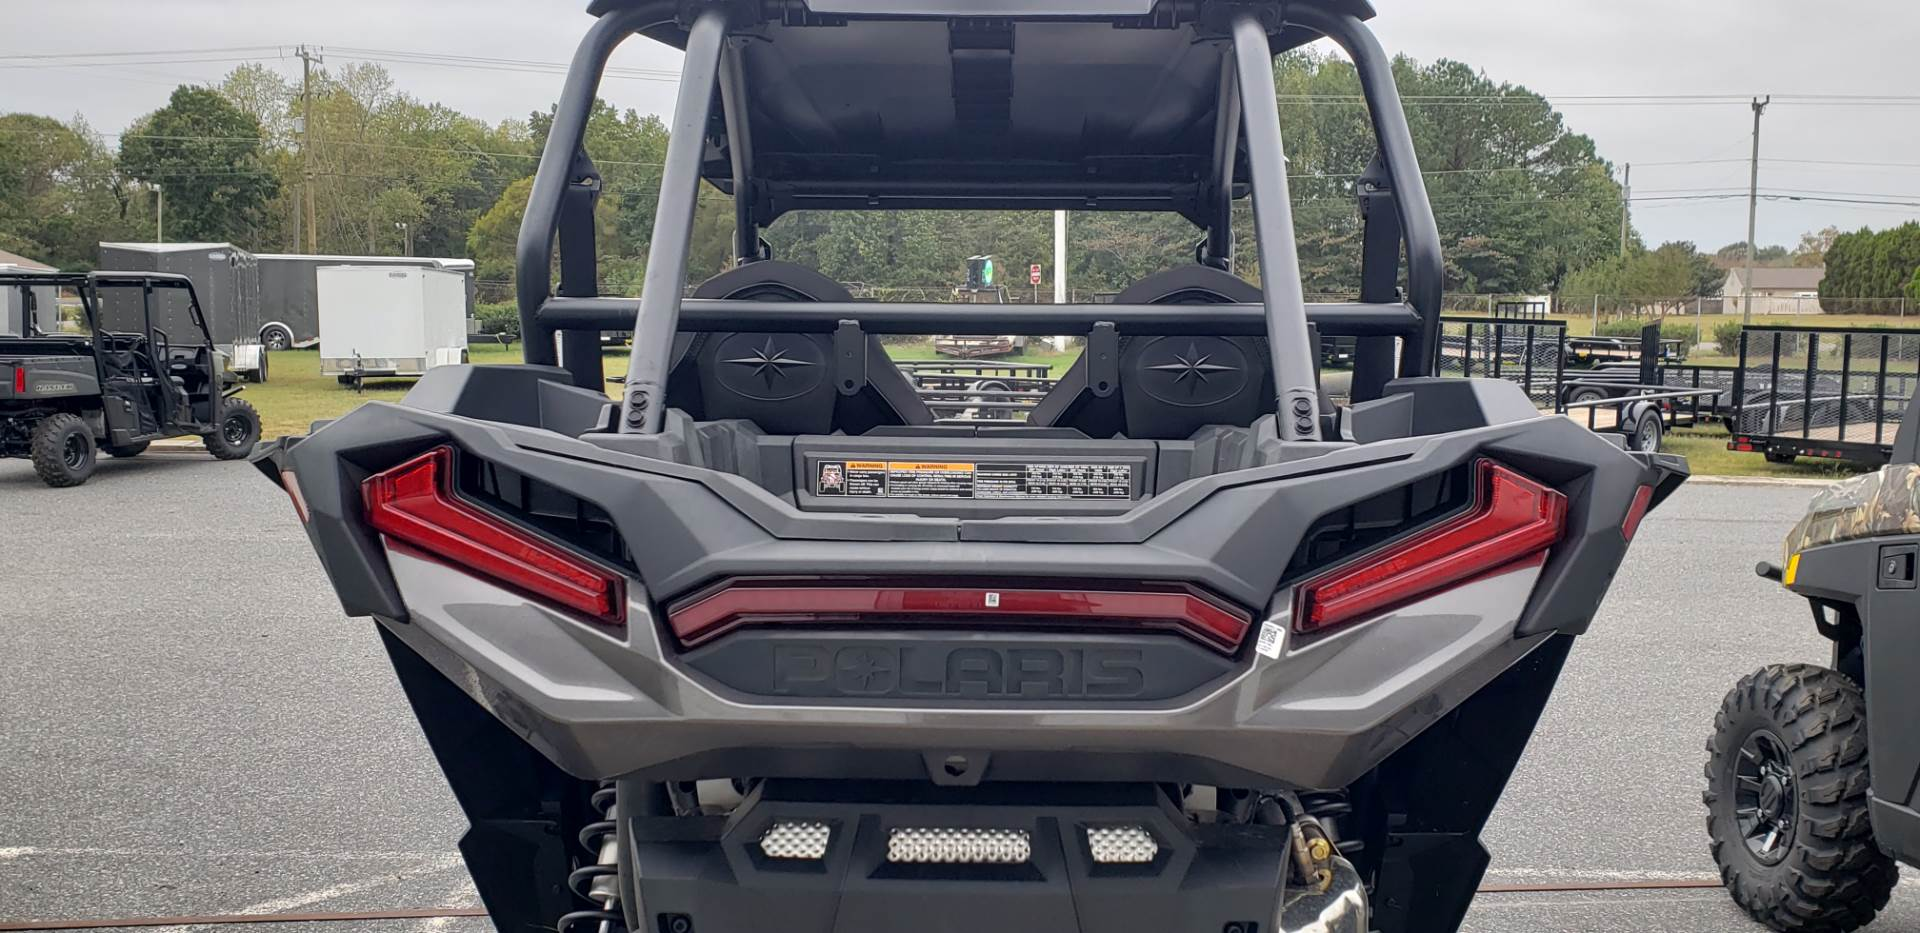 2020 Polaris RZR XP 1000 LE in Hayes, Virginia - Photo 12